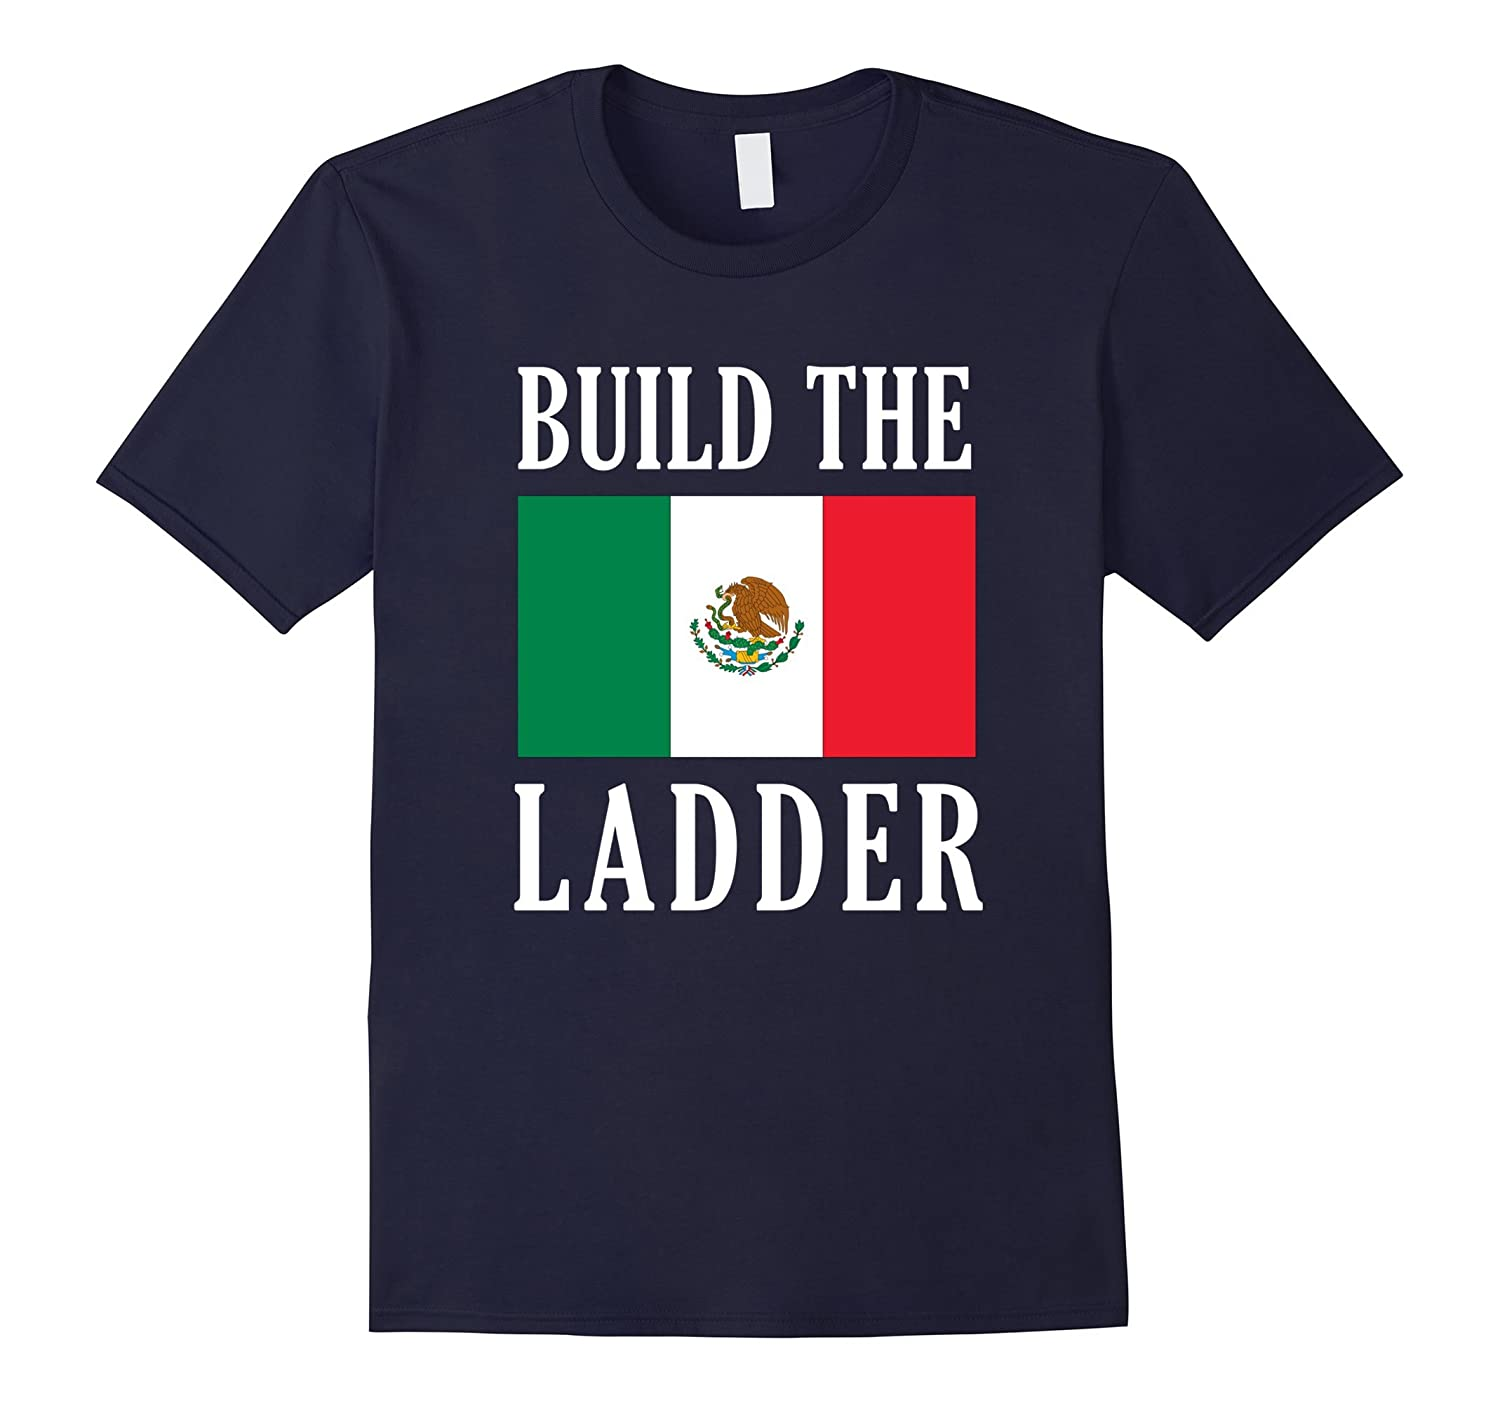 Build The Ladder T-Shirt - Mexican Ladder Meme-TD